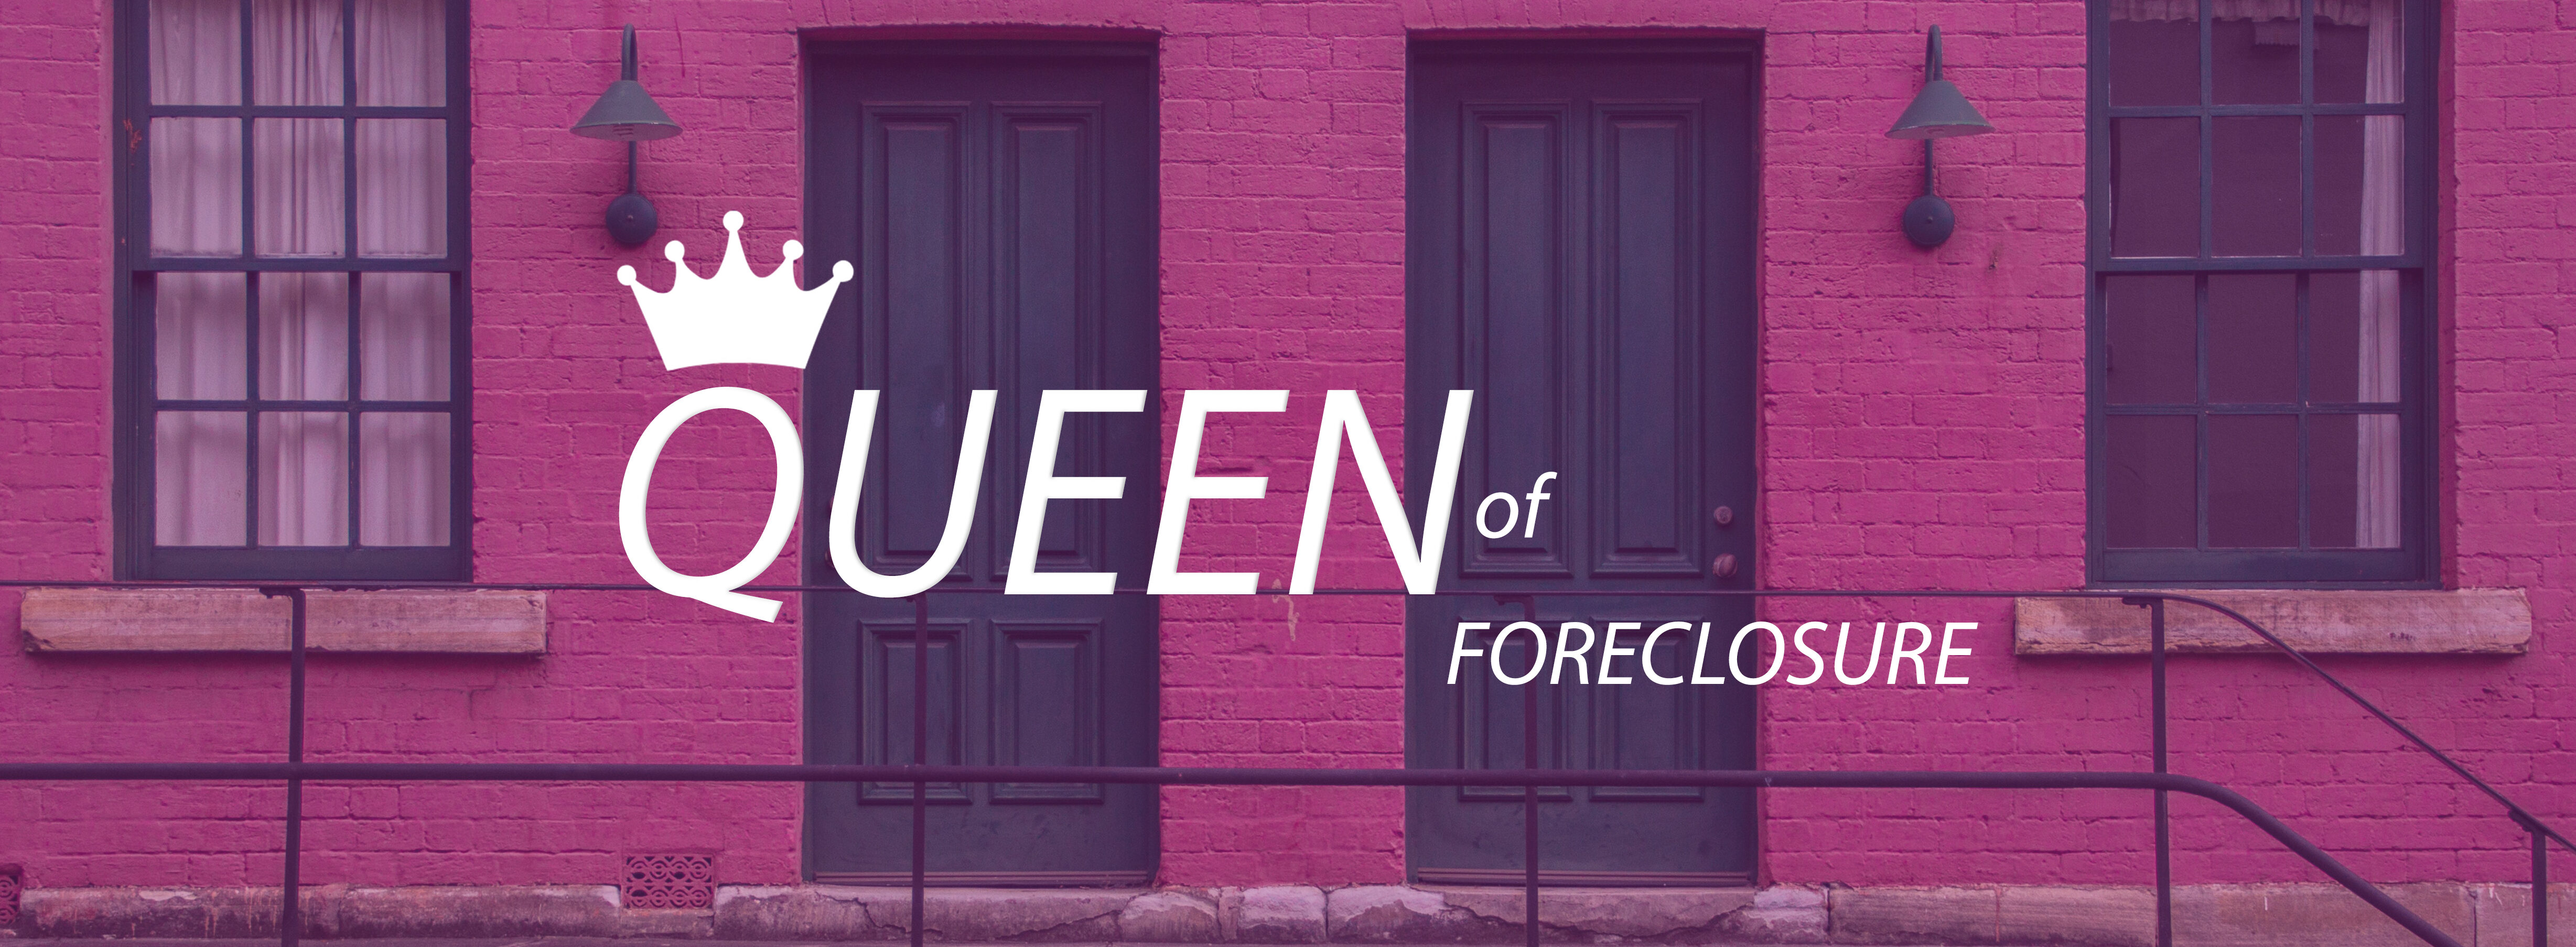 Linda Muscarello – Queen of Foreclosure